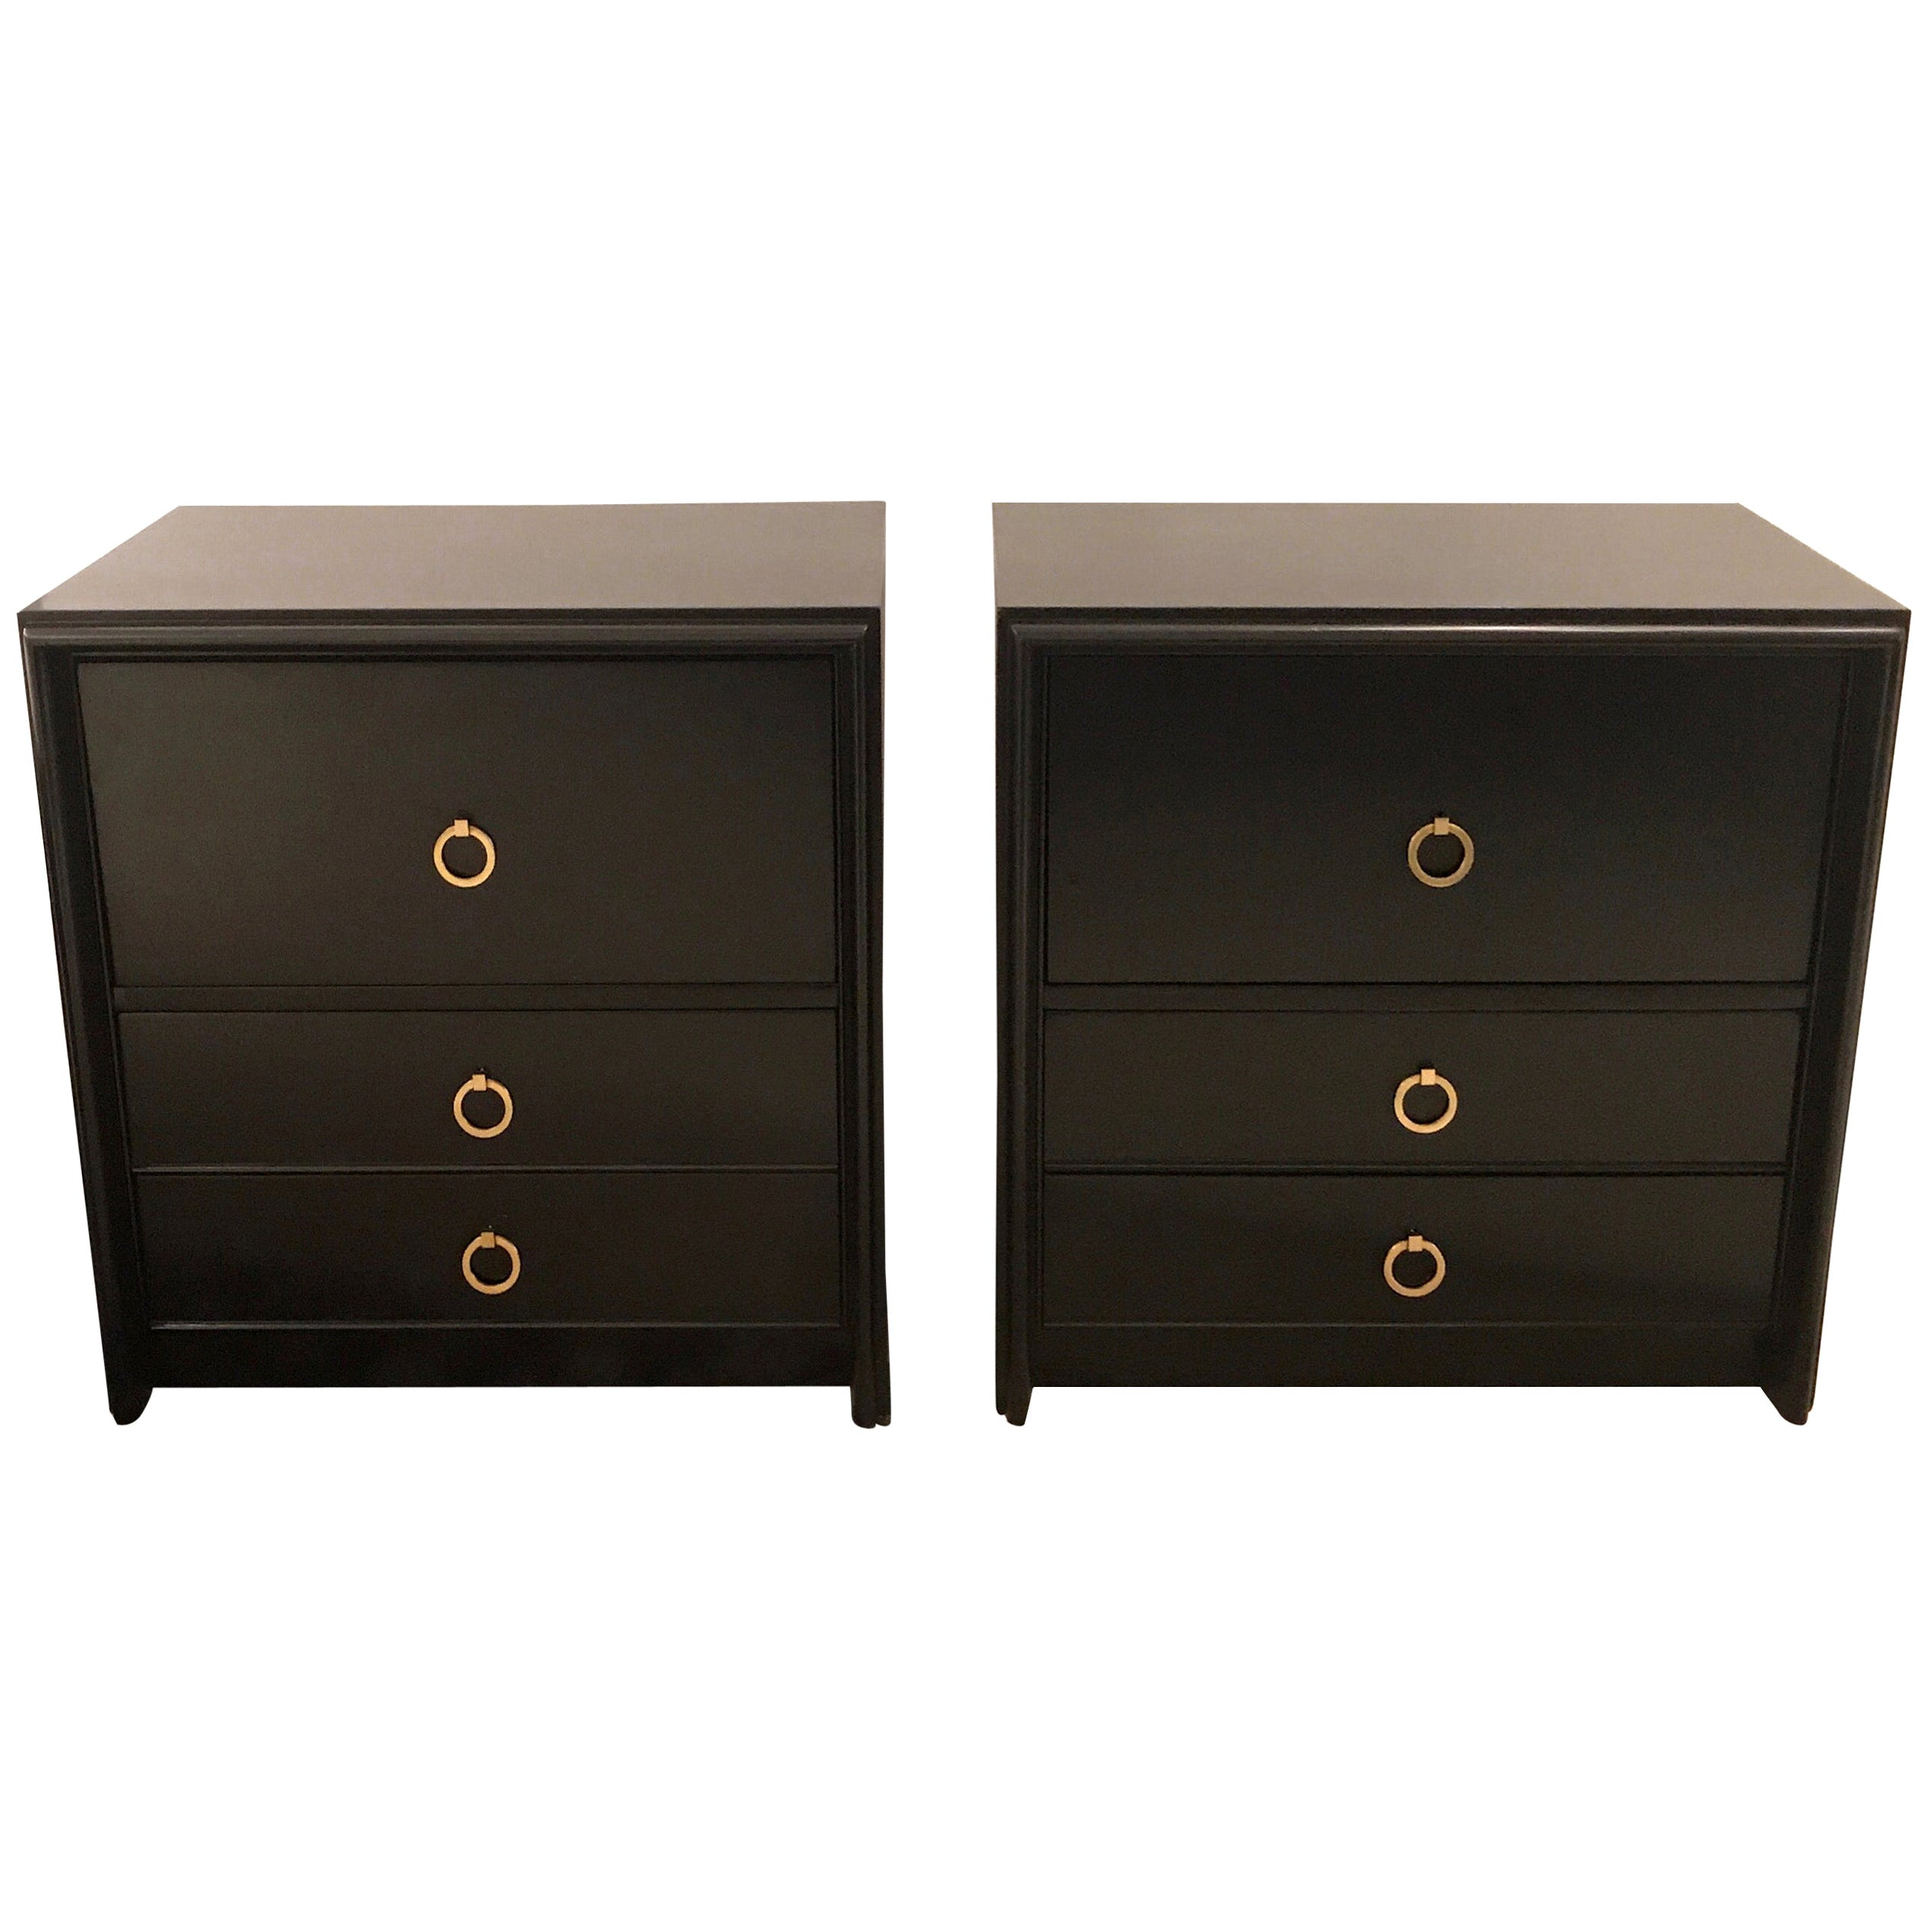 Pair of John Stuart Ebony Finish Nightstands, Side Tables